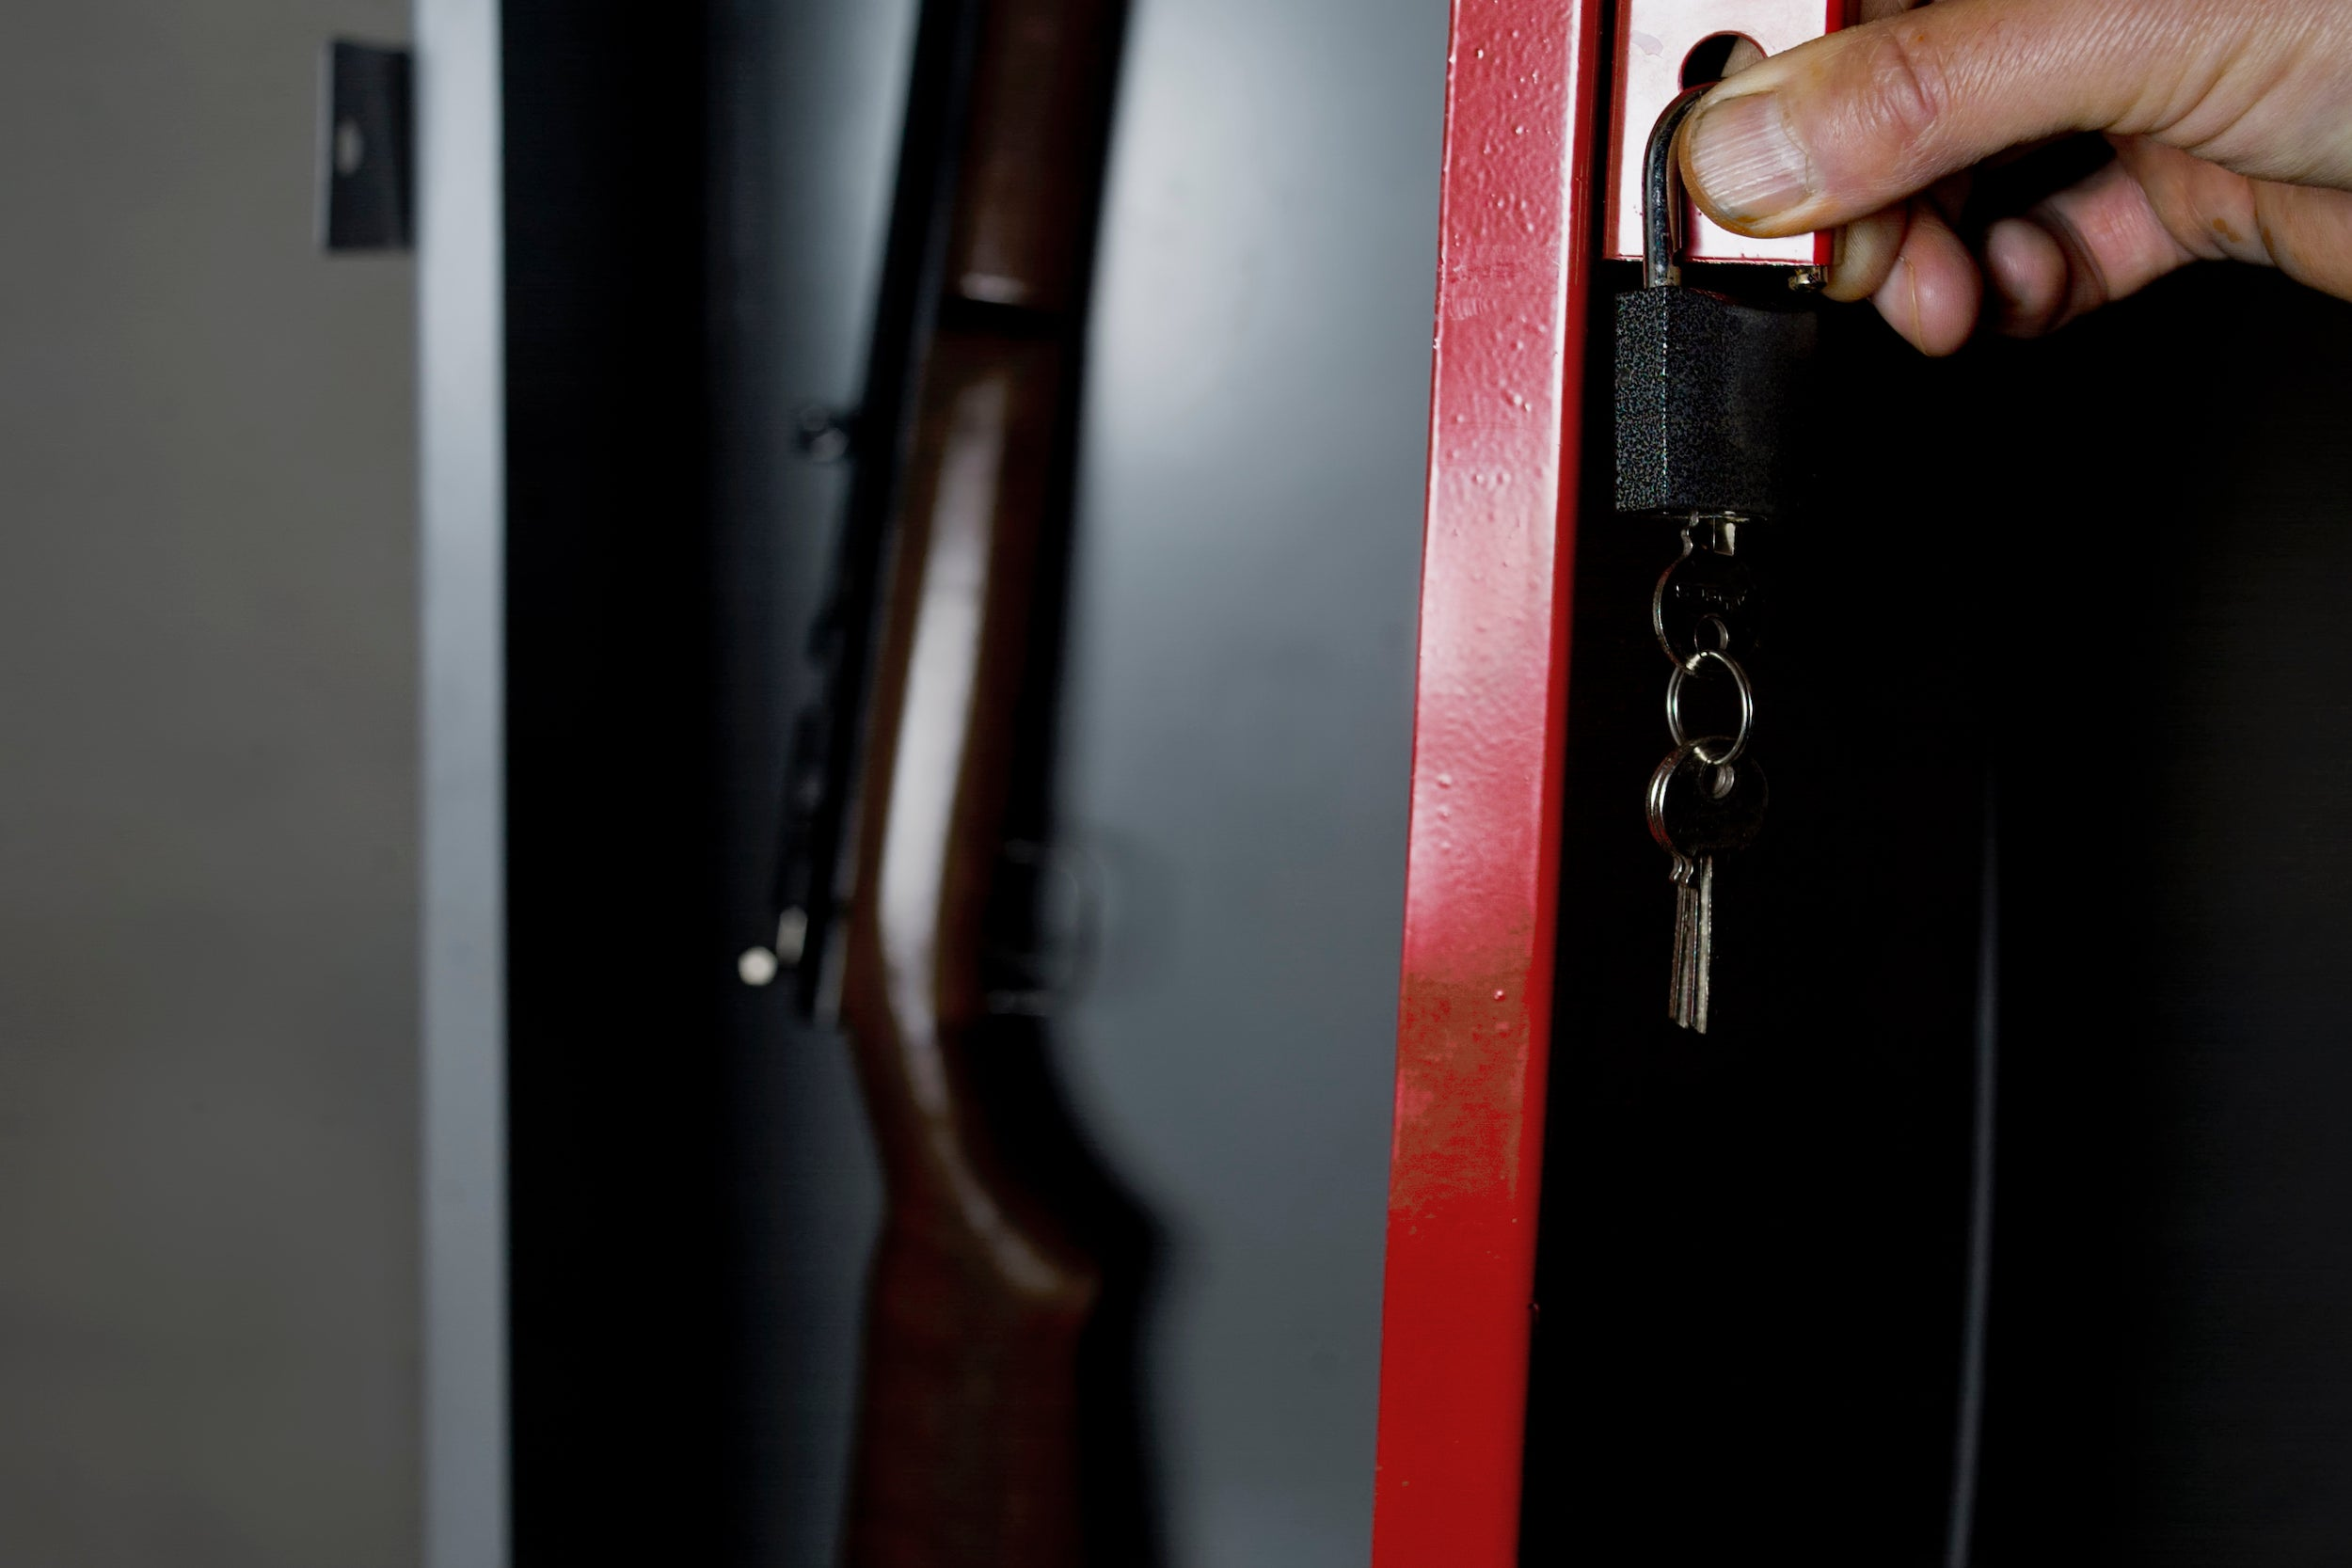 Does A Gun Make Your Home Safer?